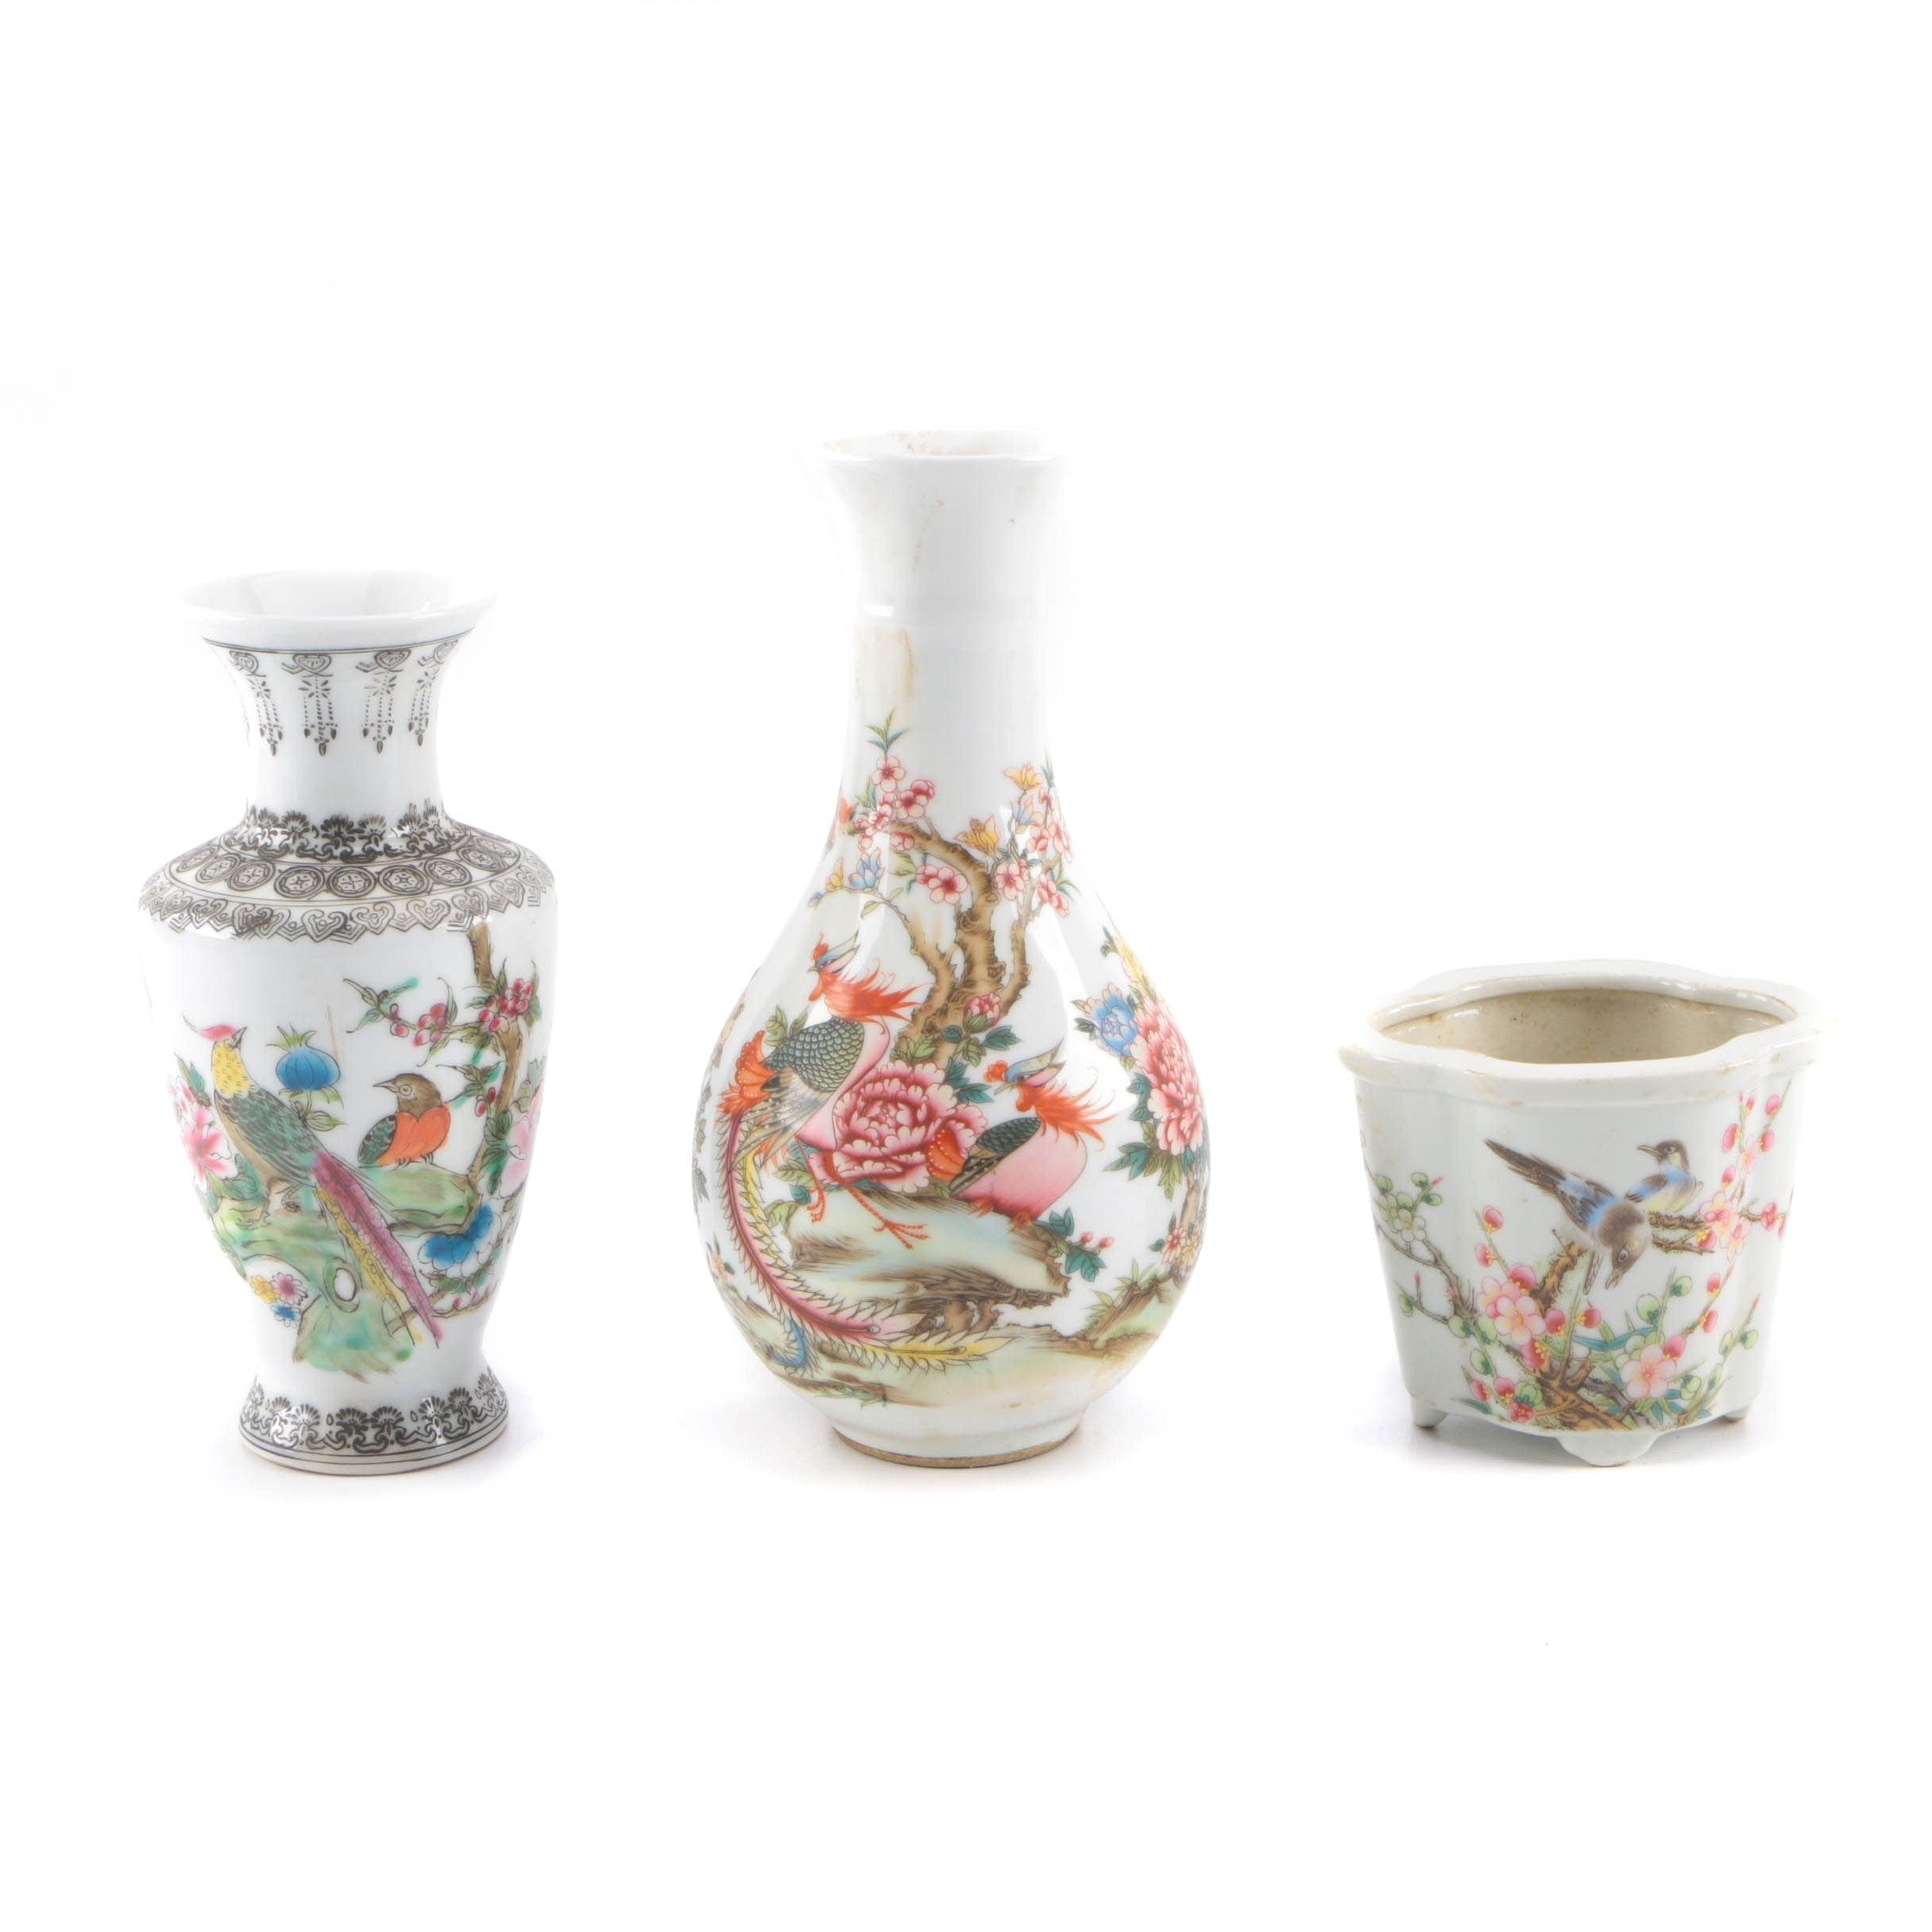 Chinese Porcelain Vessels